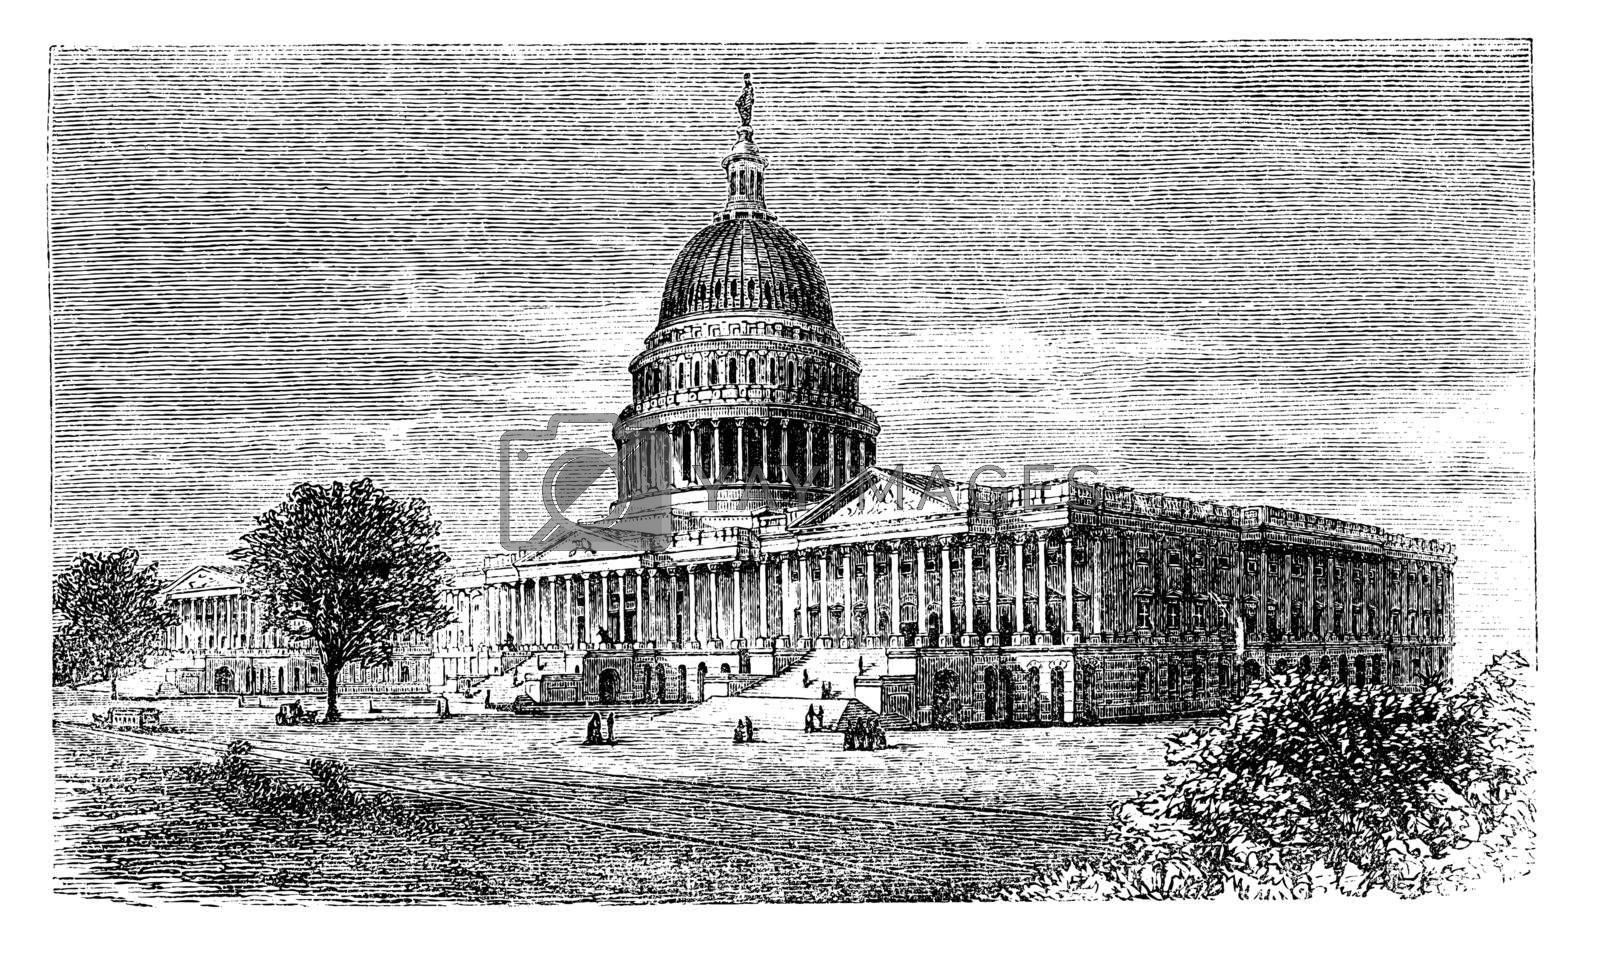 United States Capitol, in Washington, D.C., USA, vintage engraved illustration. Trousset encyclopedia (1886 - 1891).